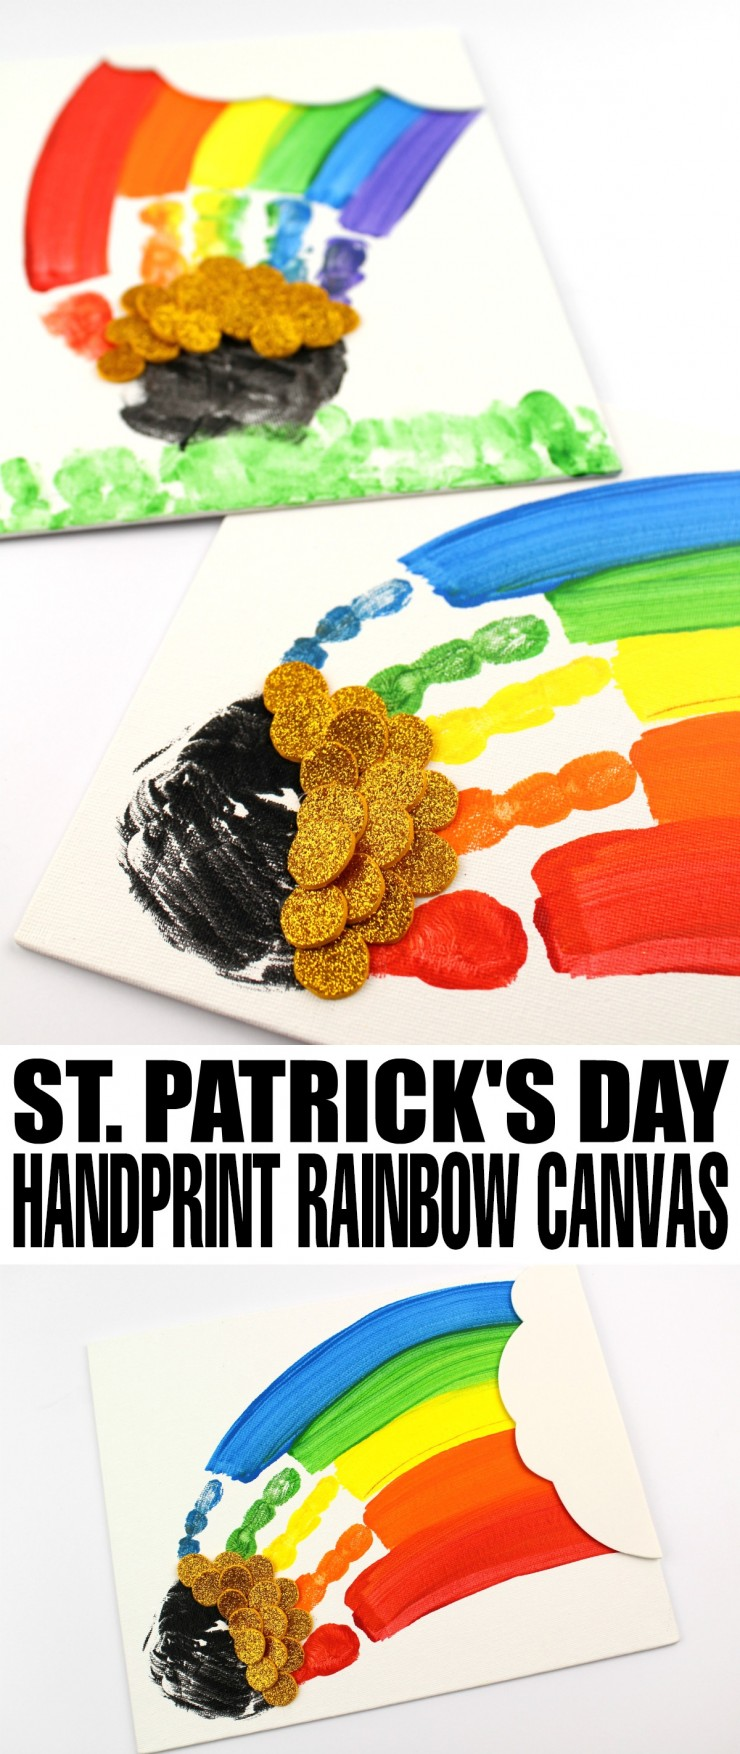 This St. Patrick's Day Handprint Rainbow Canvas is fun craft for kids that also makes for a lovely keepsake gift or art to hang up on your childs wall.